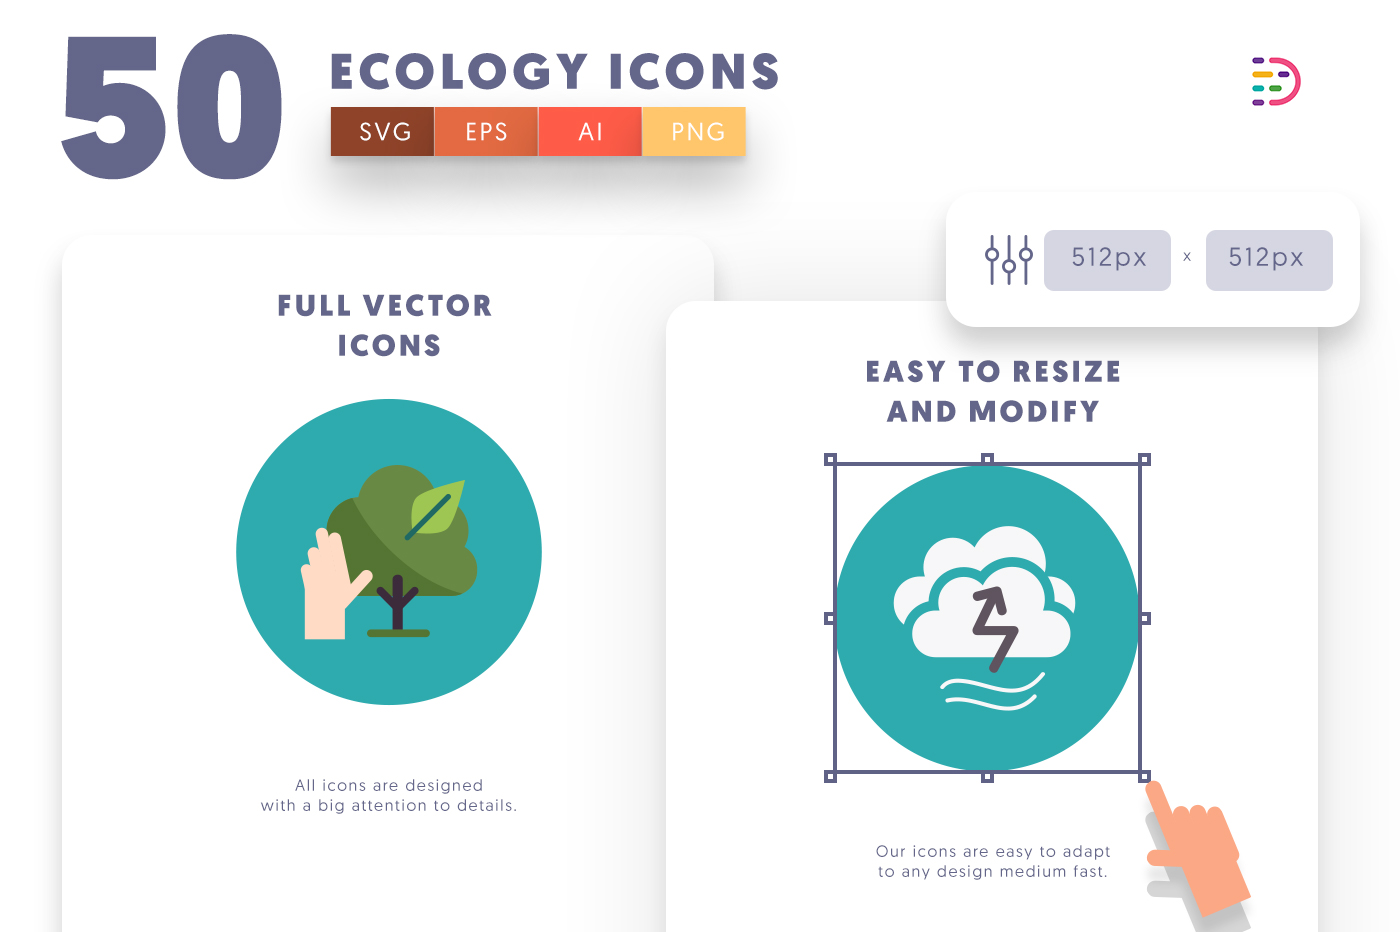 Customizable and vector 50 Ecology Icons